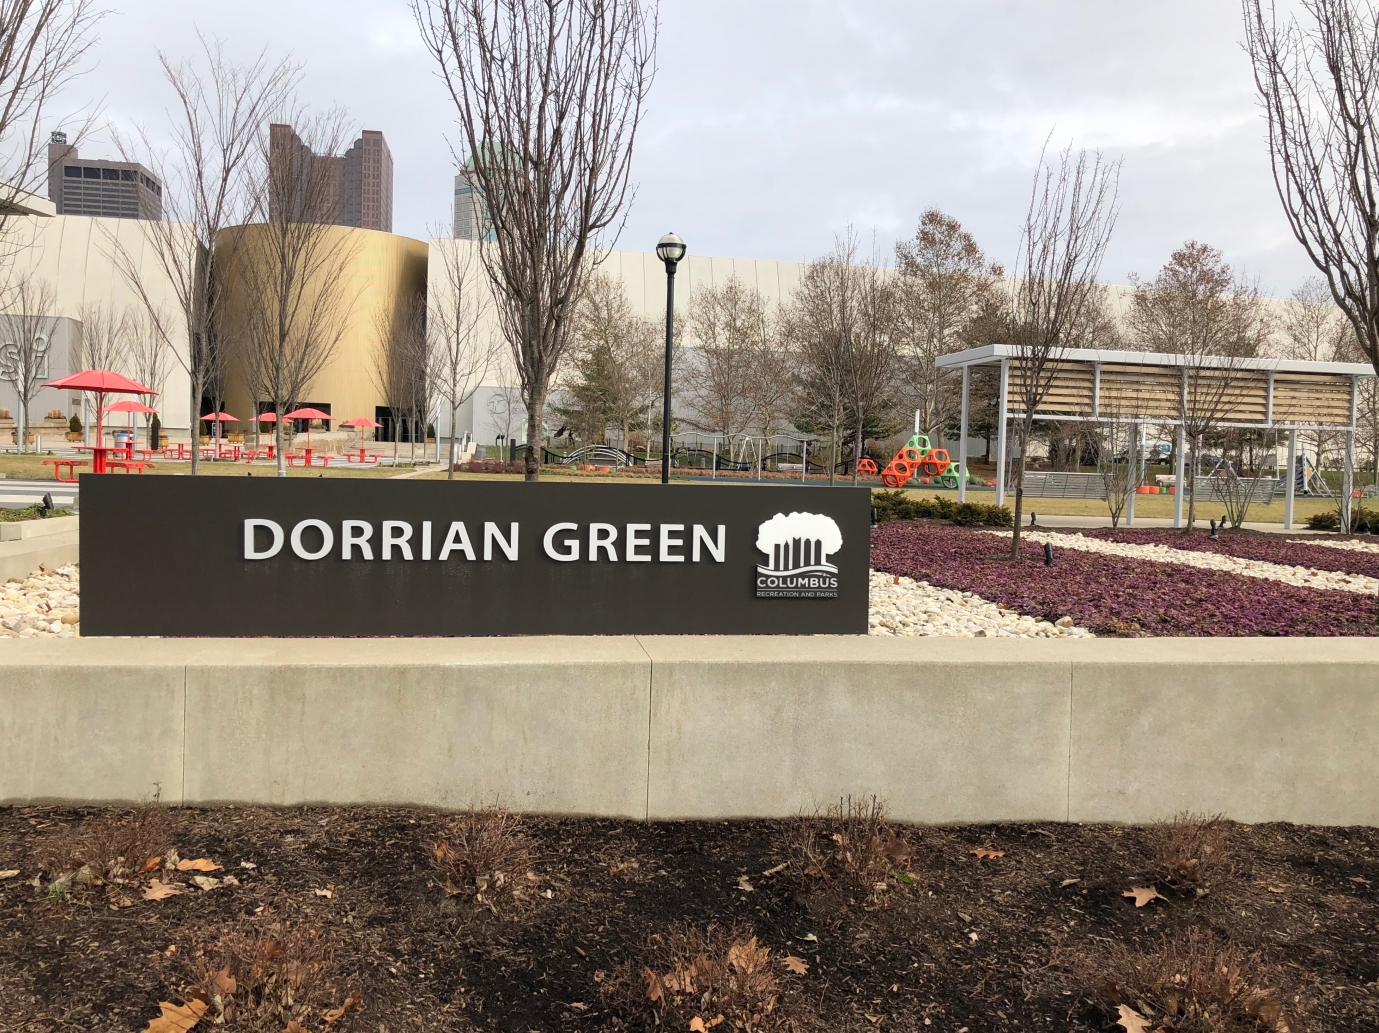 Dorrian Green park and green space outside COSI in Columbus, Ohio